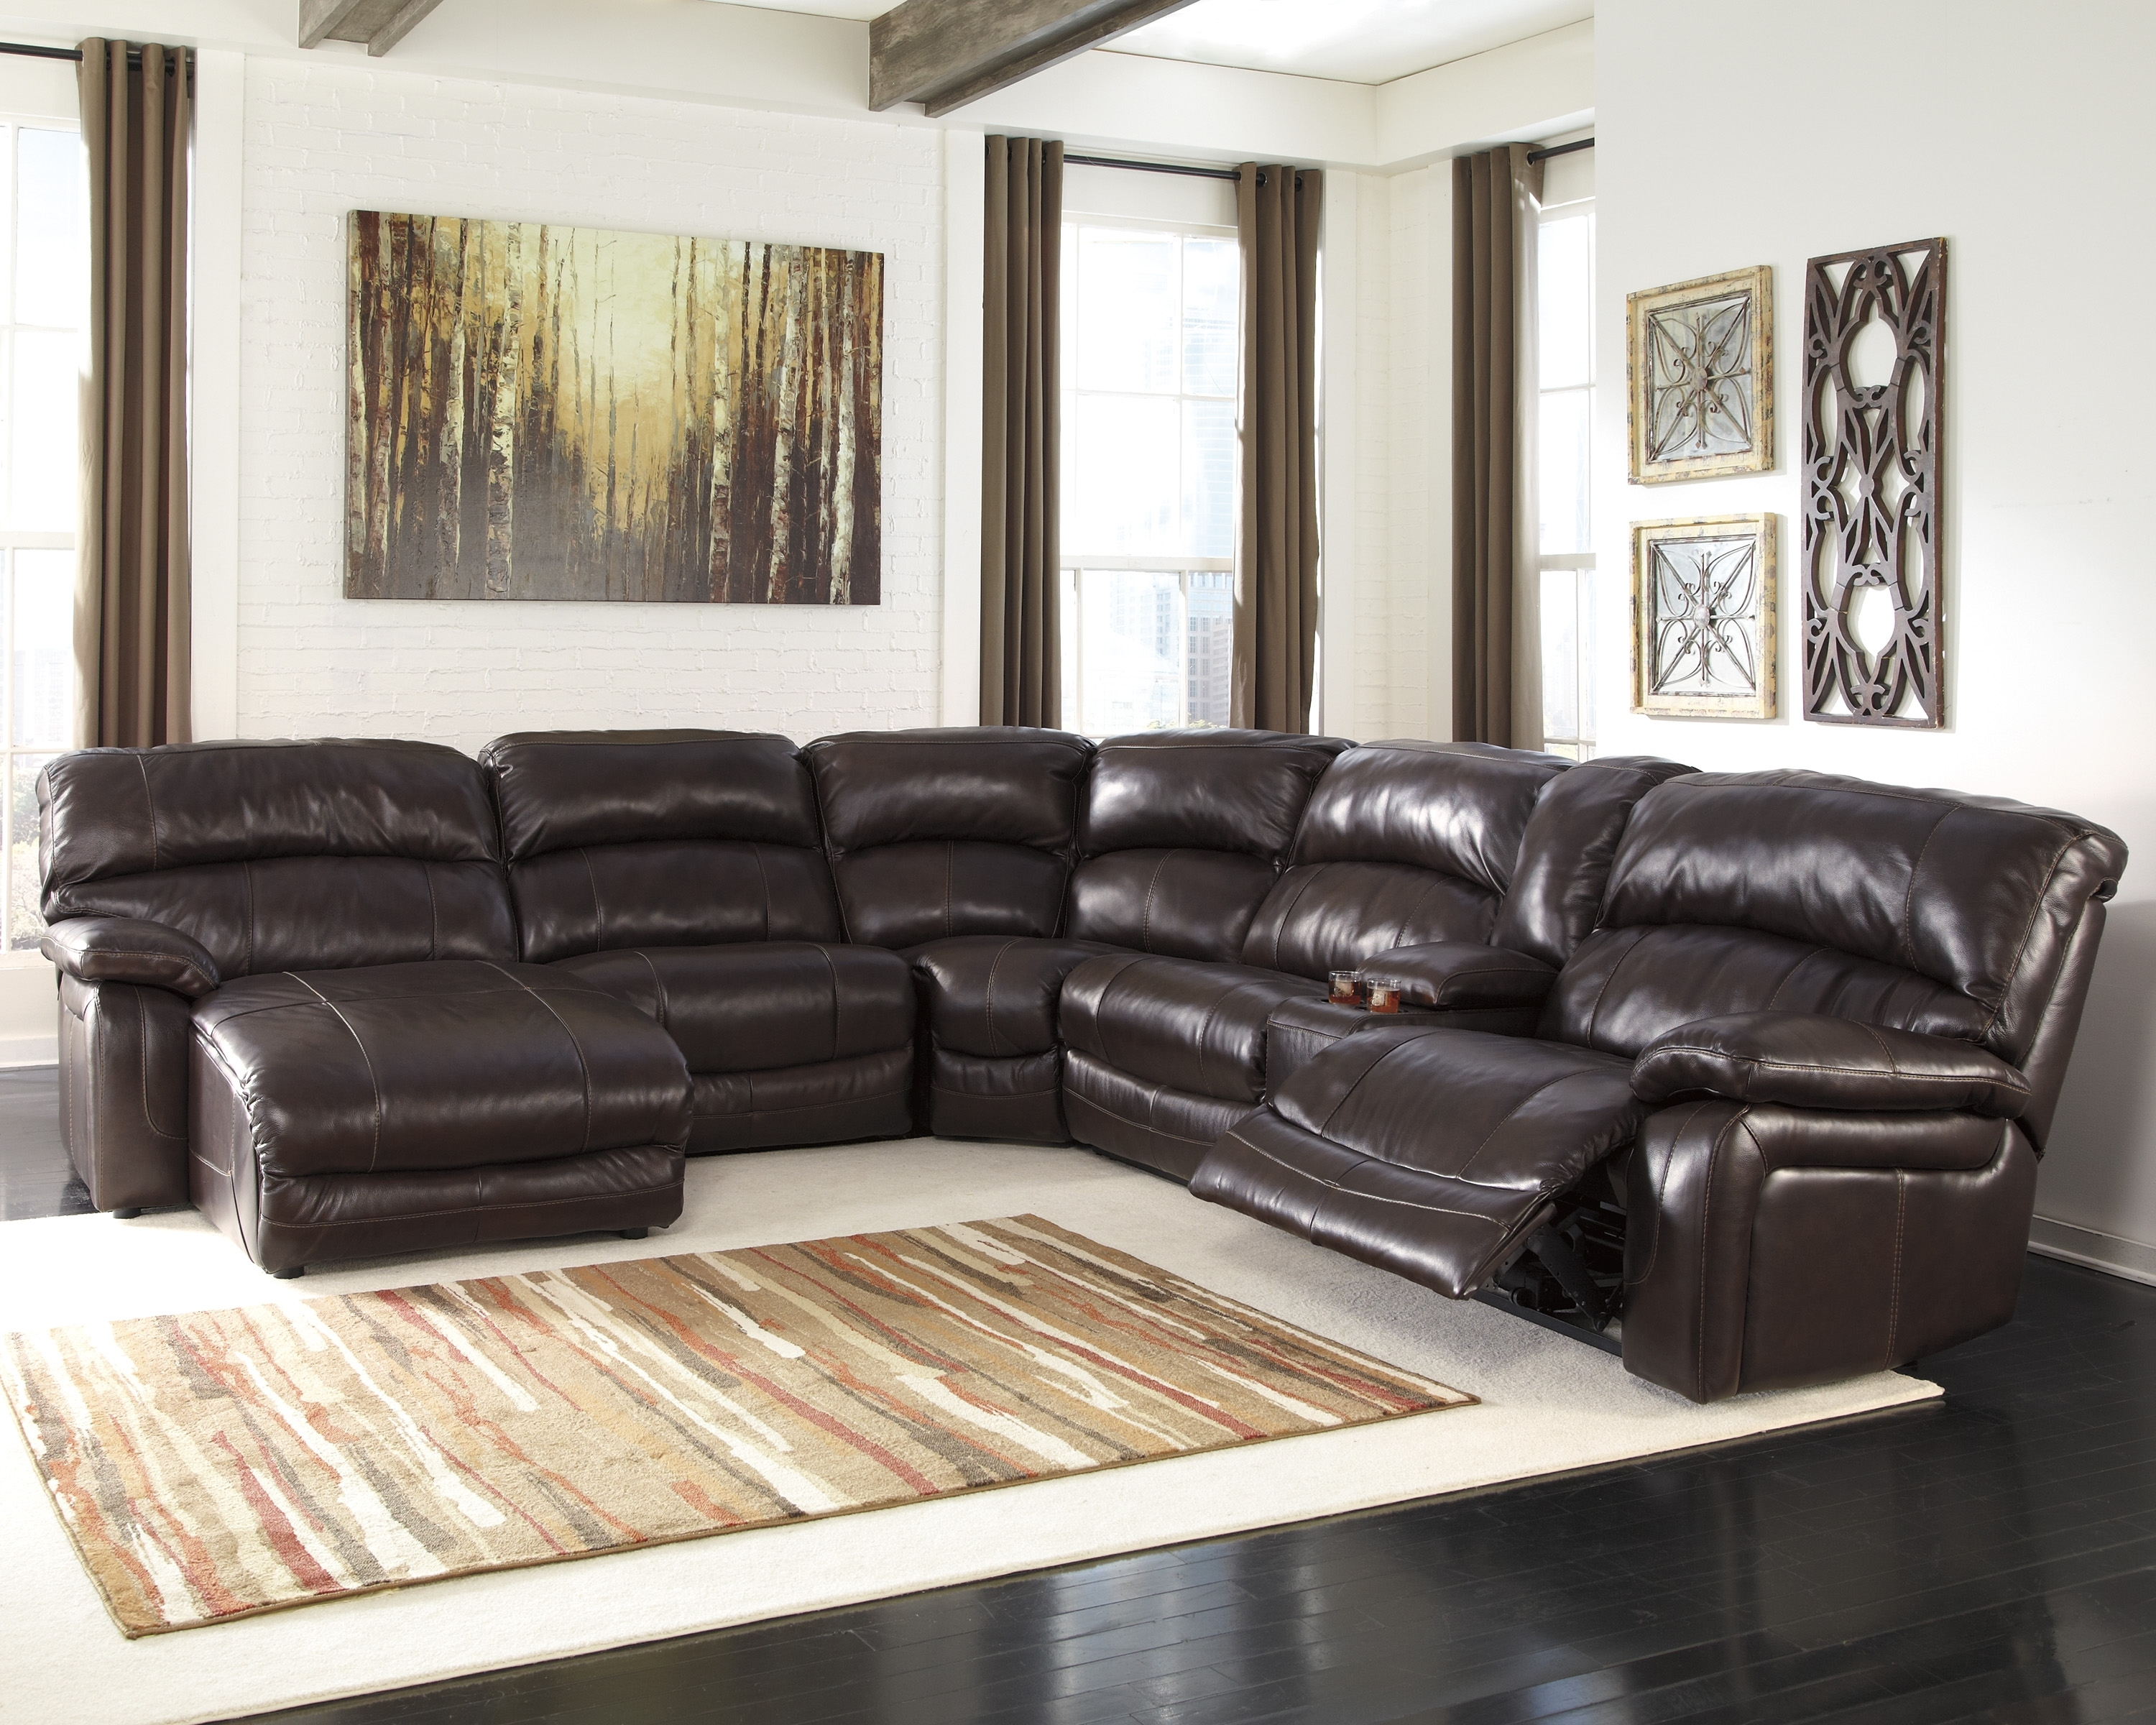 Most Popular 6 Piece Leather Sectional Sofas Pertaining To Leather Sectional Sofa With Recliner And Chaise (View 16 of 20)